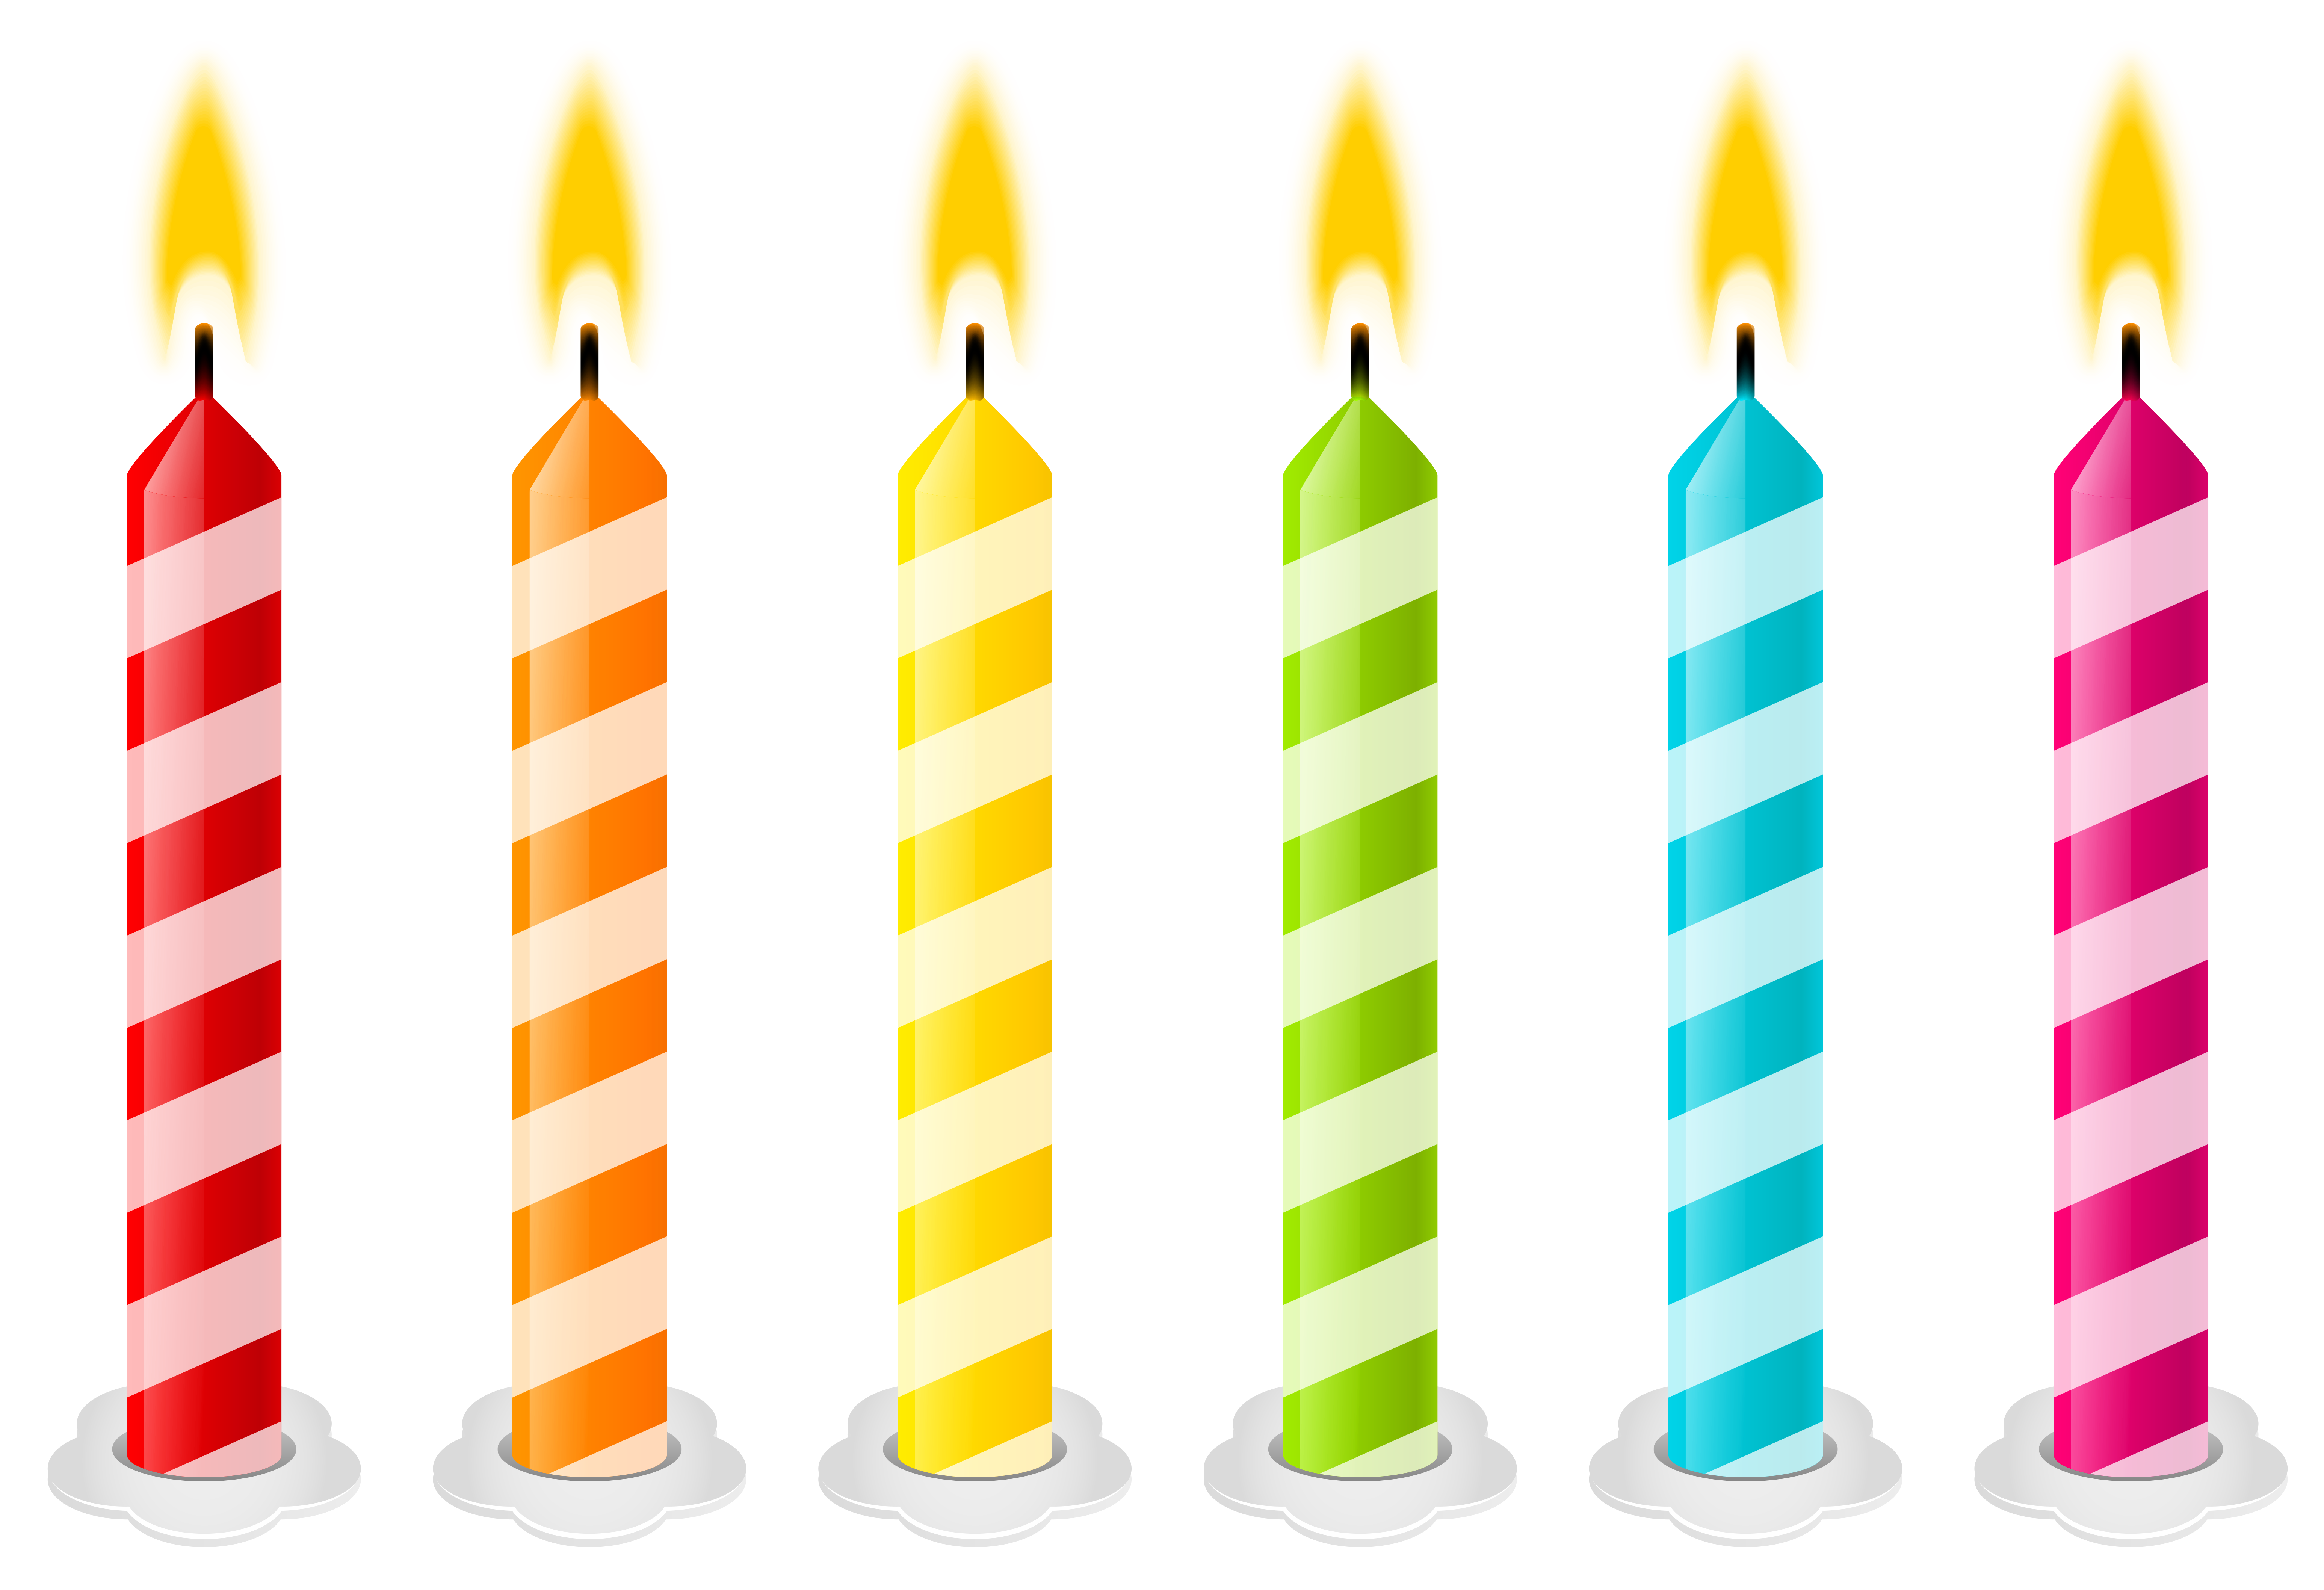 Birthday candle clipart animated picture transparent library Birthday Candle Clip Art & Birthday Candle Clip Art Clip Art ... picture transparent library